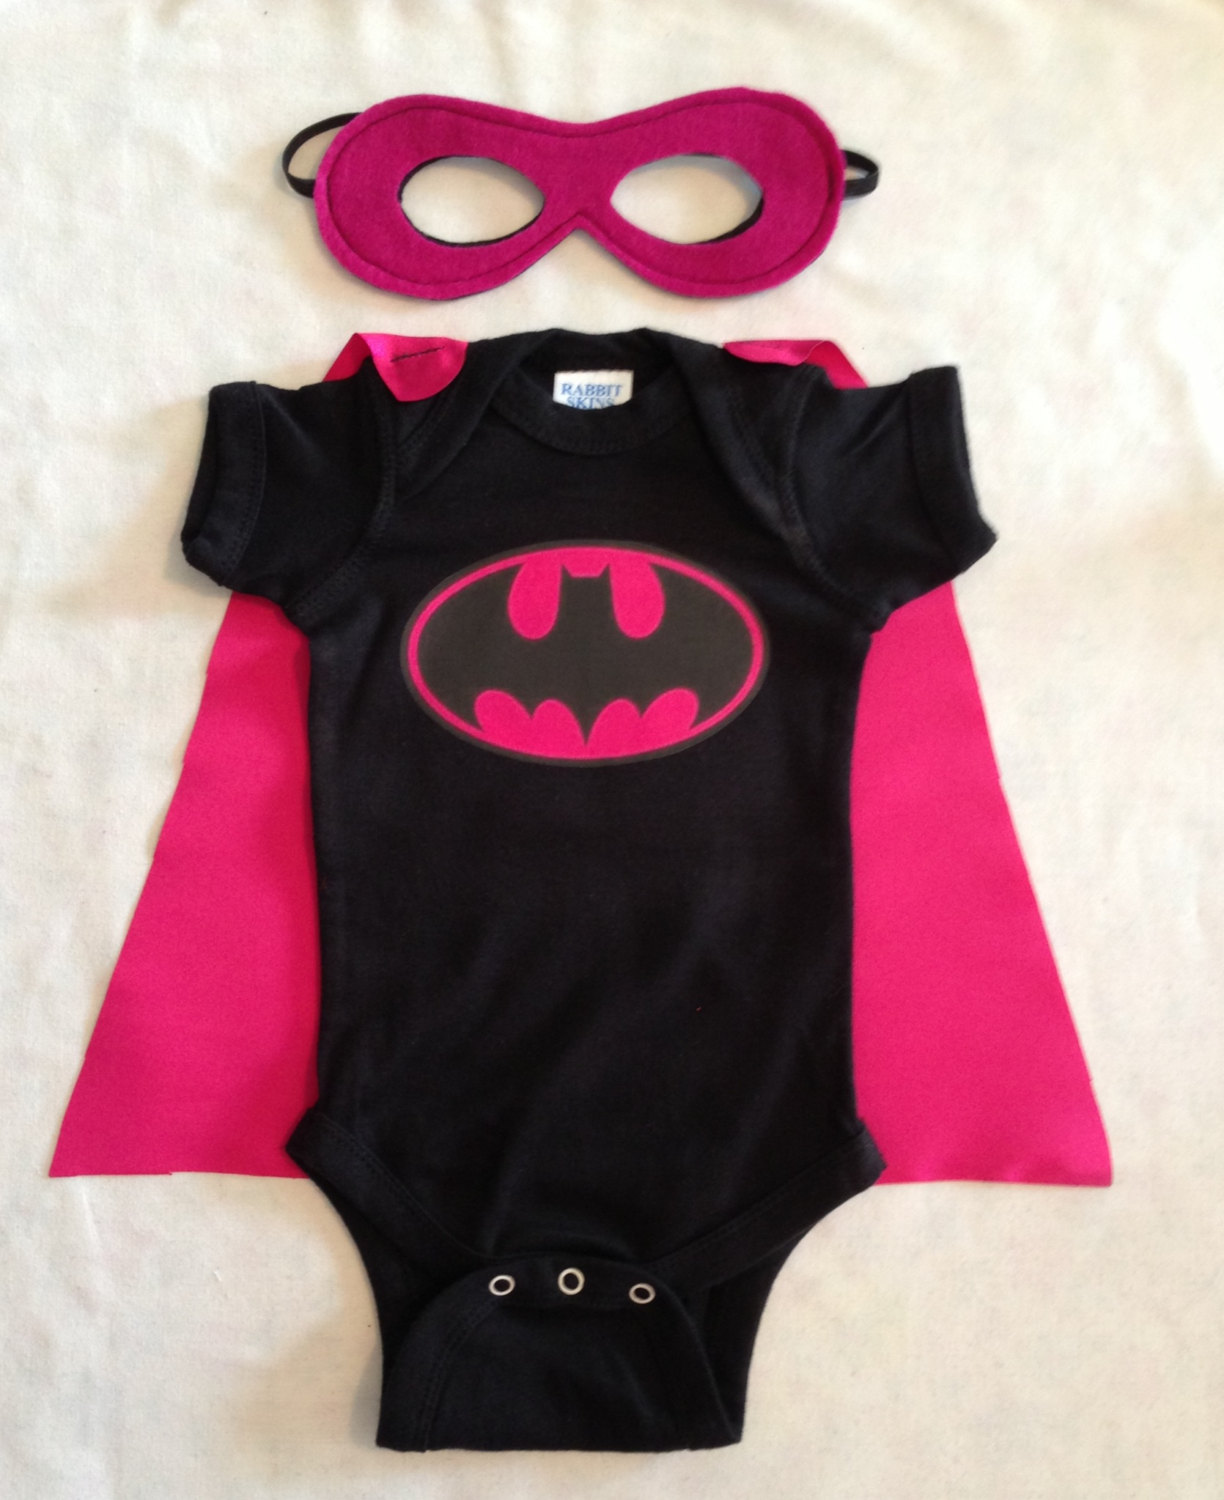 Find great deals on Kids Batman Clothing at Kohl's today! Sponsored Links Outside companies pay to advertise via these links when specific phrases and words are searched.